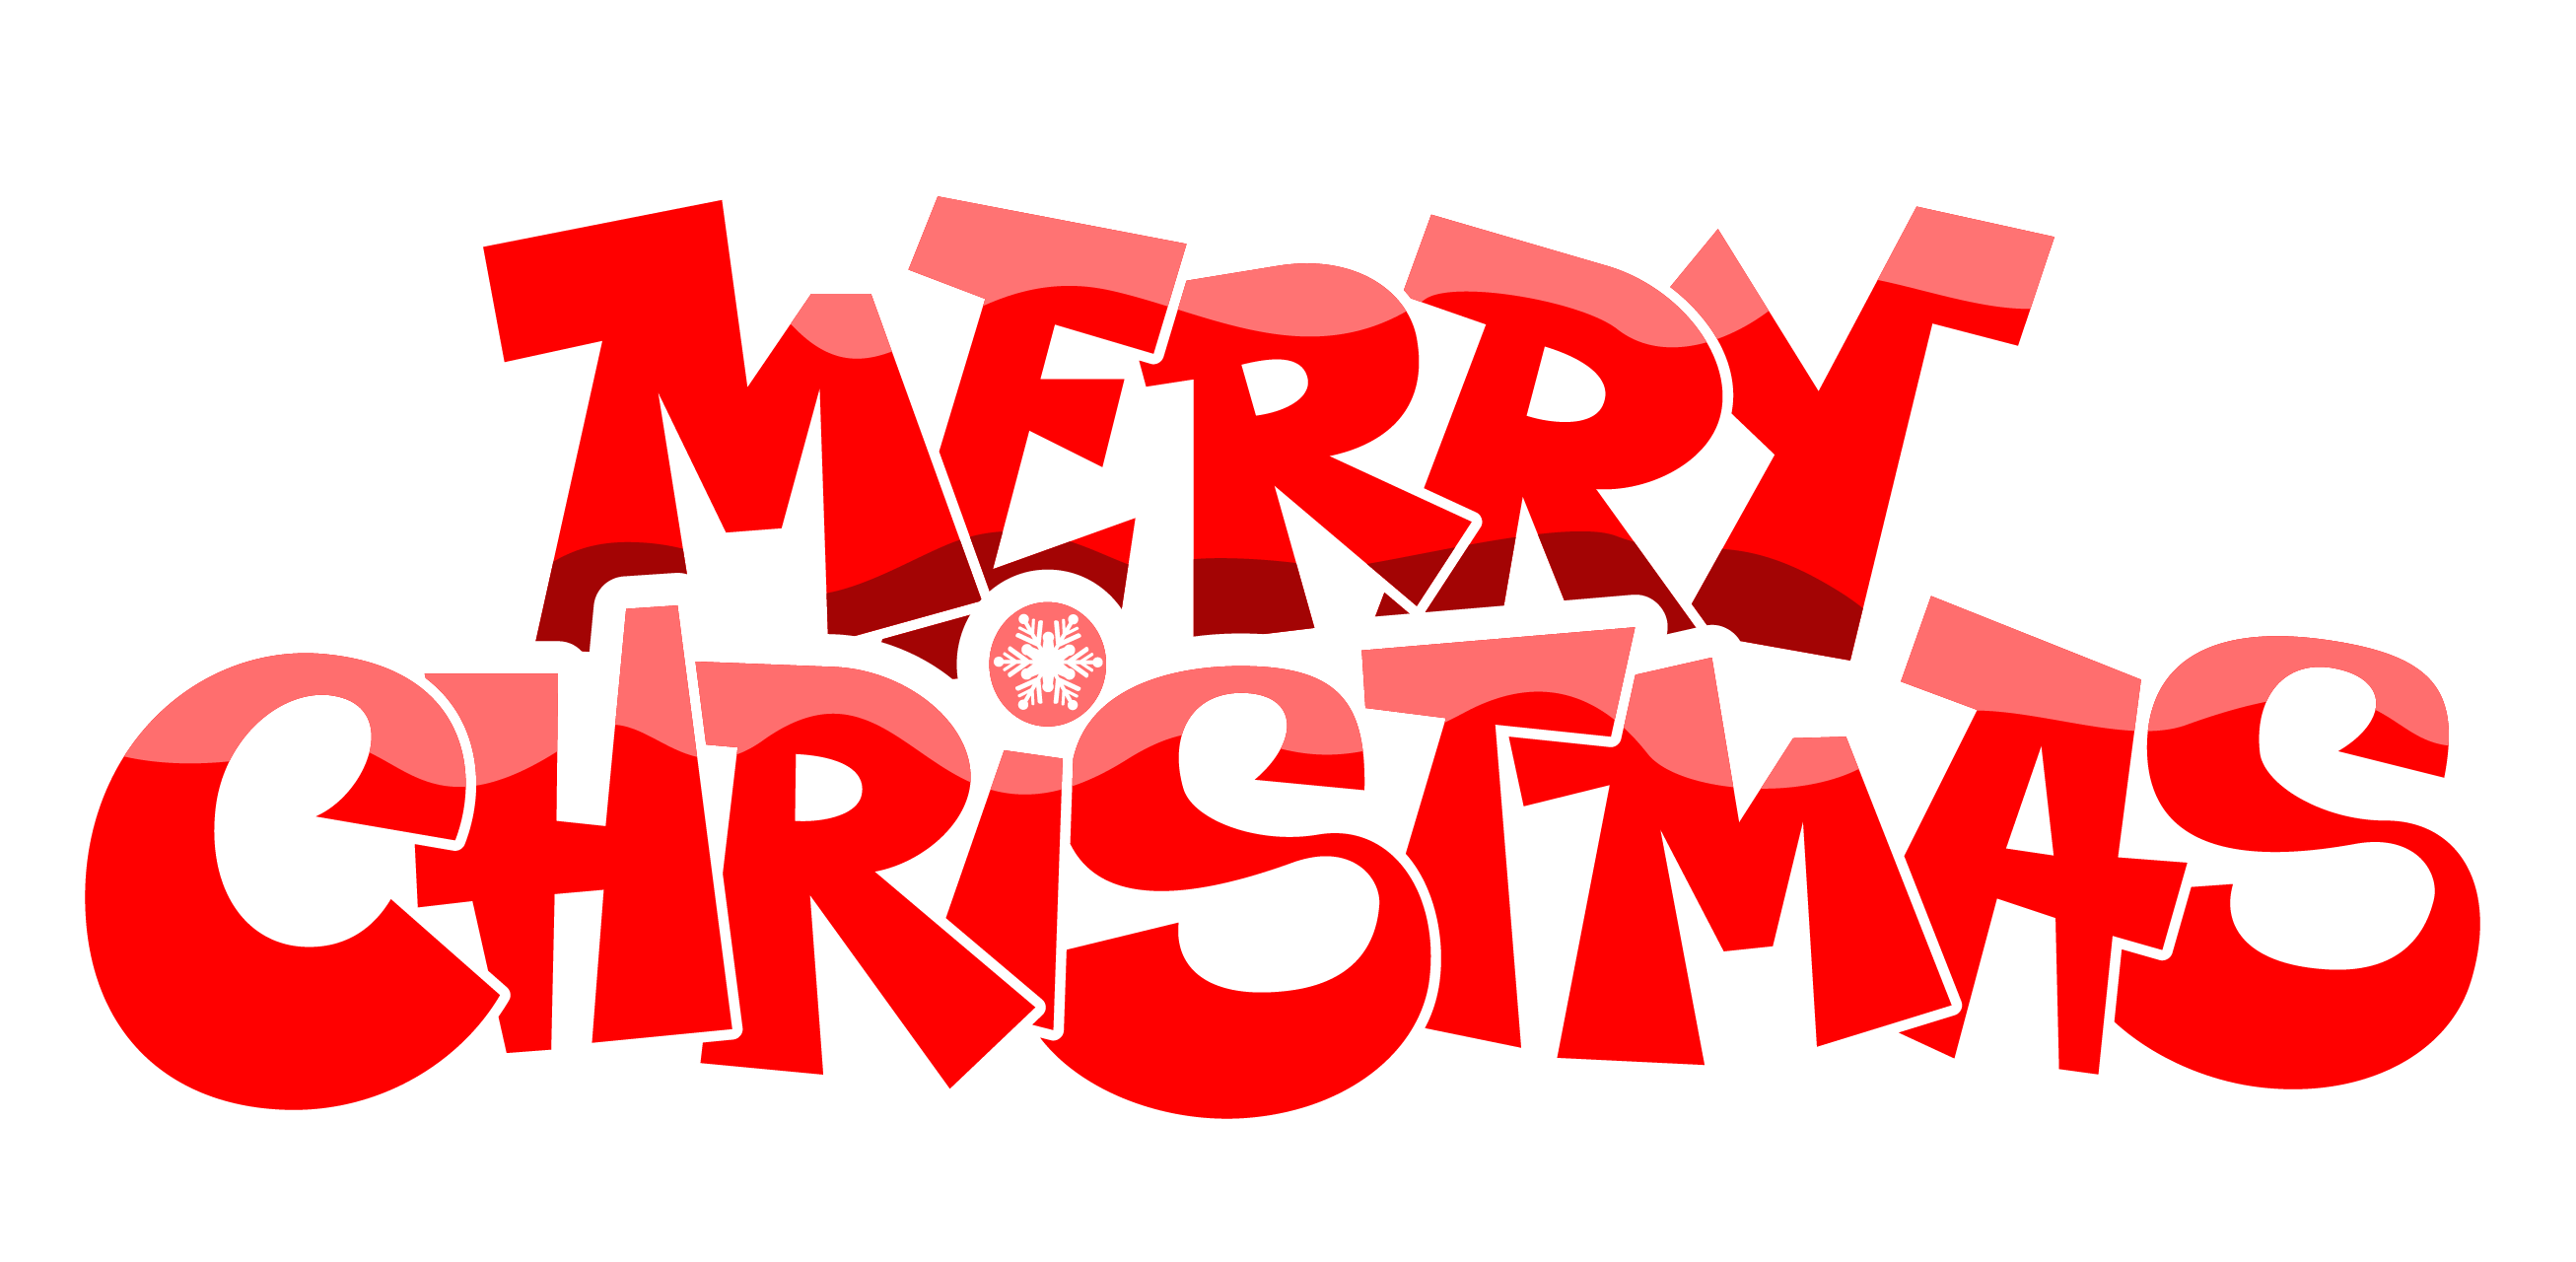 Clipart hd text clipart transparent library Merry Christmas PNG Text | Gallery Yopriceville - High-Quality ... clipart transparent library